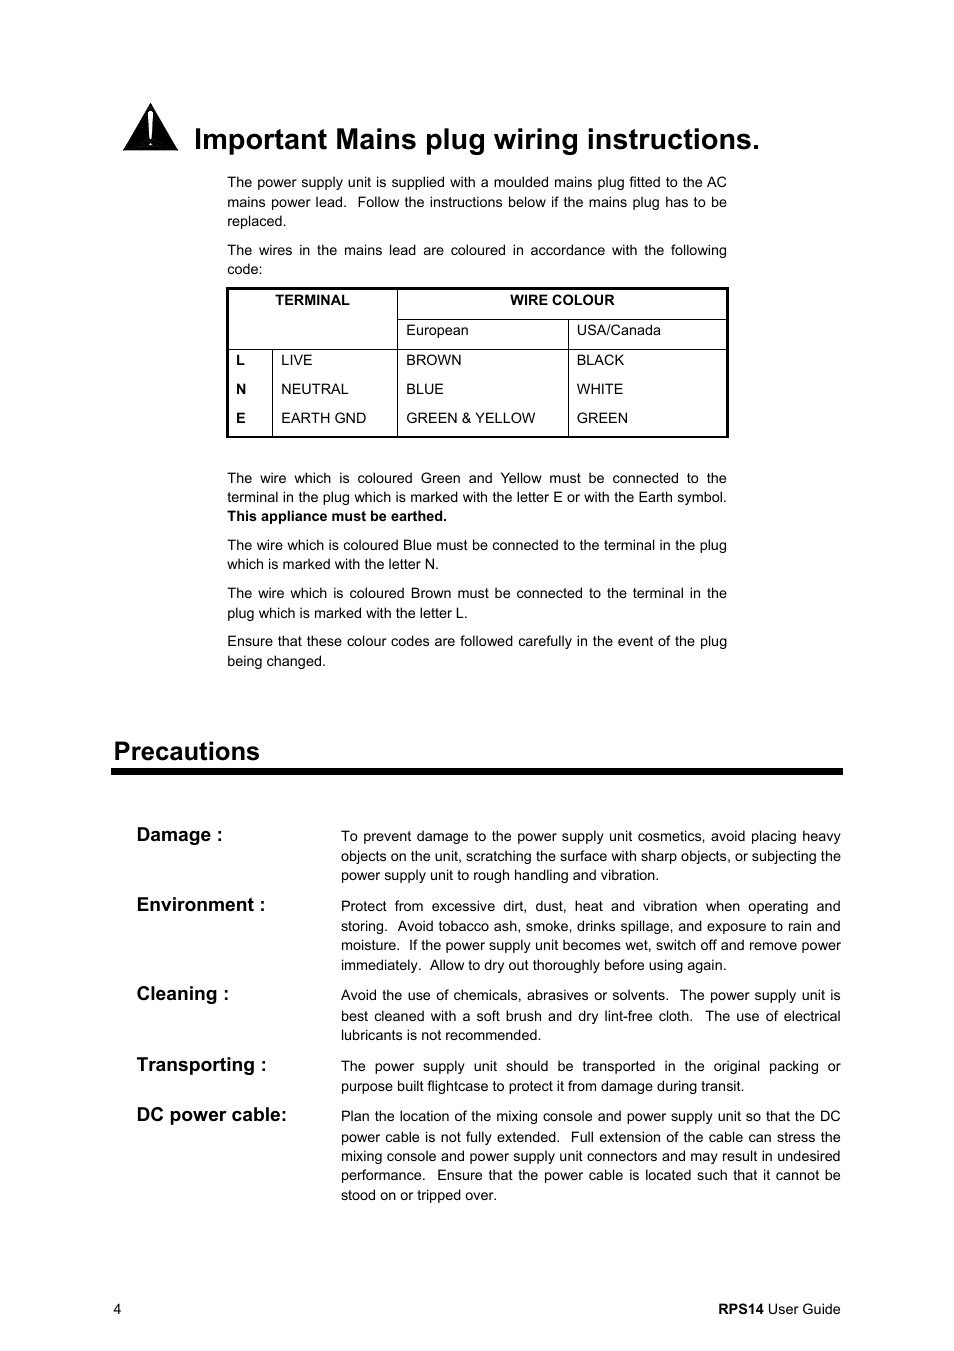 Important Mains Plug Wiring Instructions Precautions Damage A British Allen Heath Rps14 User Manual Page 4 8